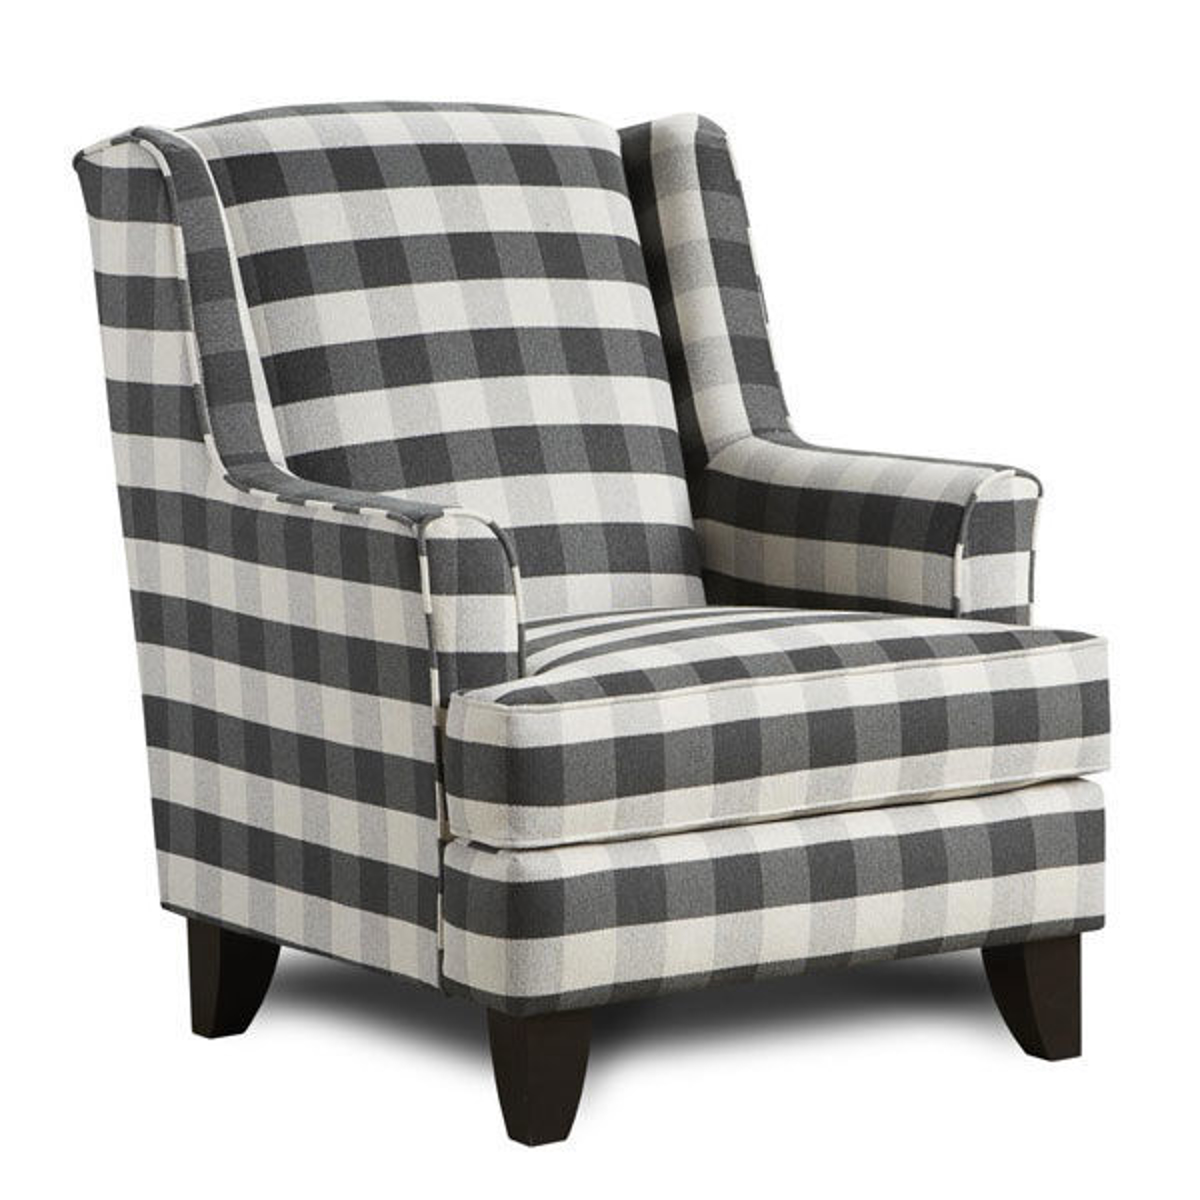 Picture of Doggie Chair In Checker